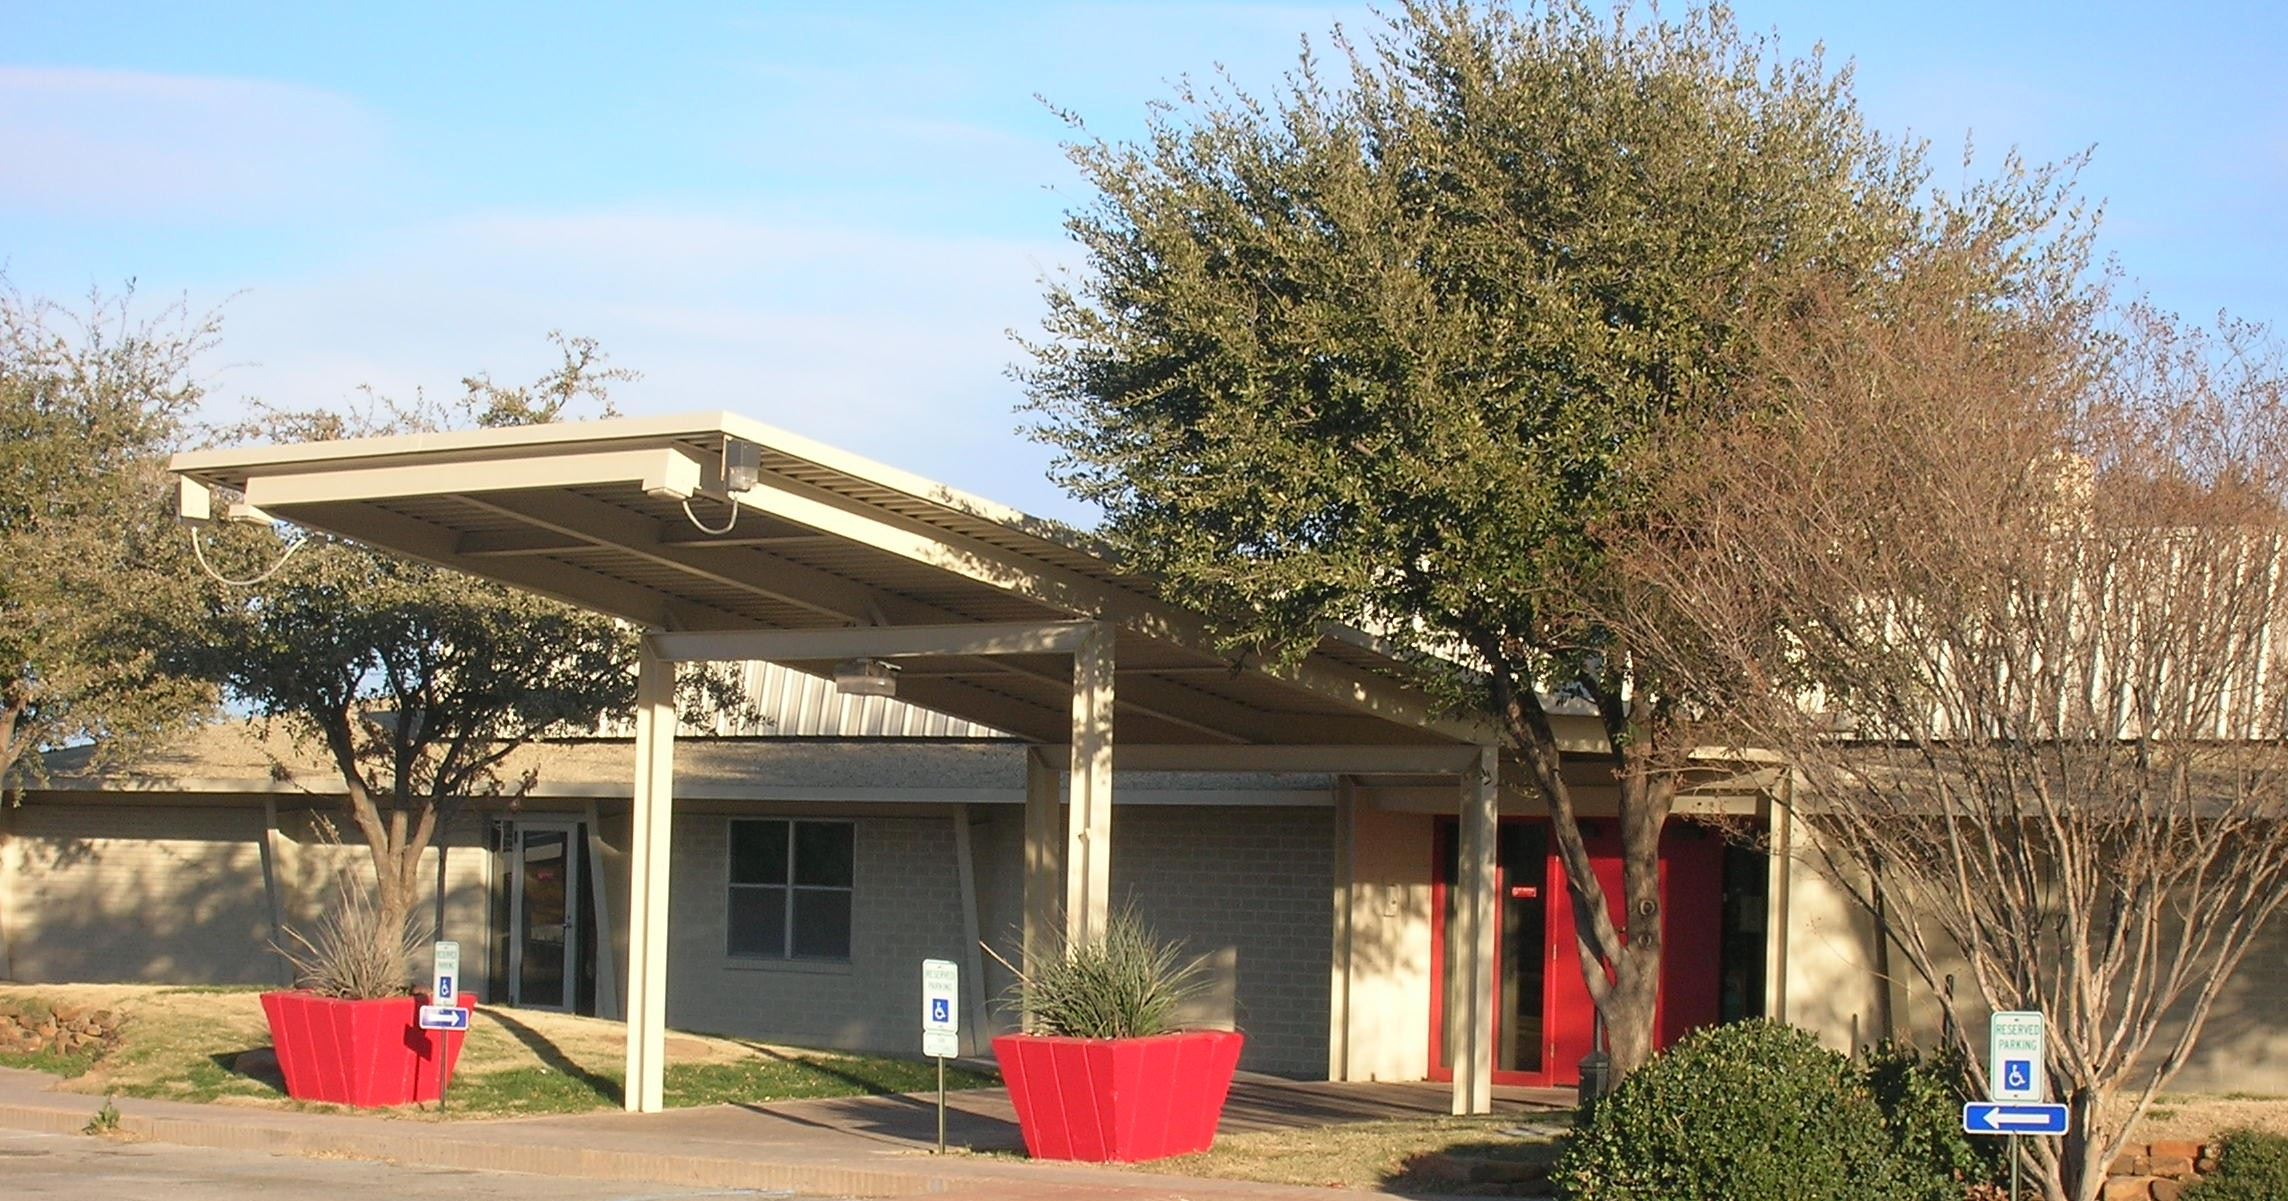 Dora Roberts Community Center Entrance